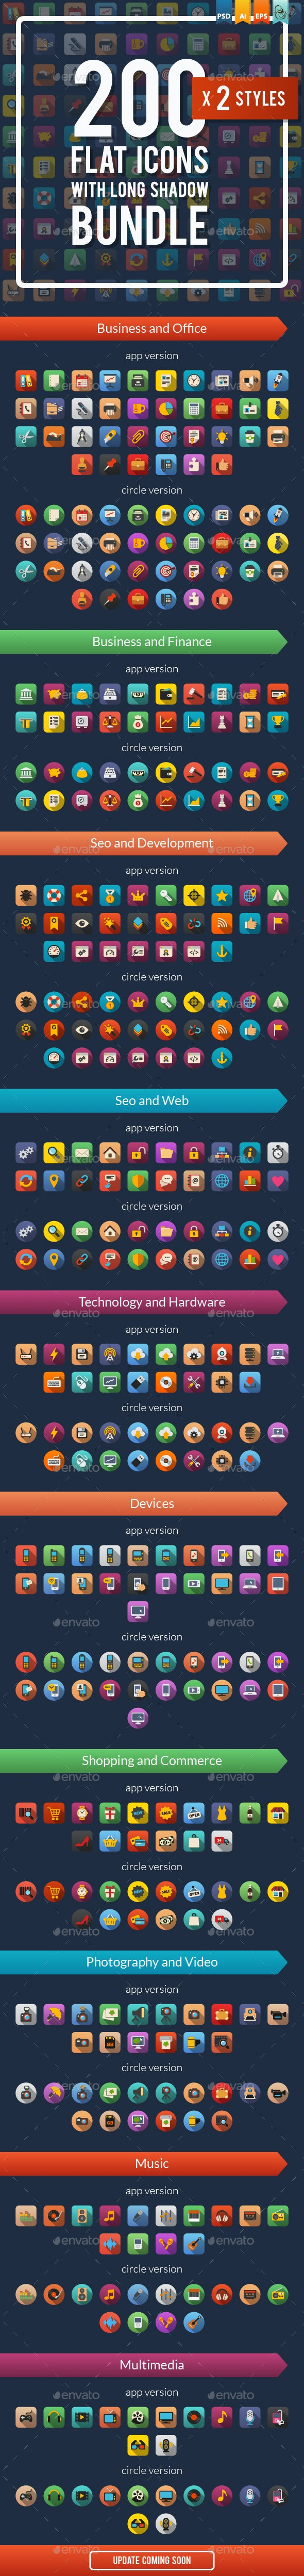 Universal Colorful Flat Icons Bundle - Objects Icons